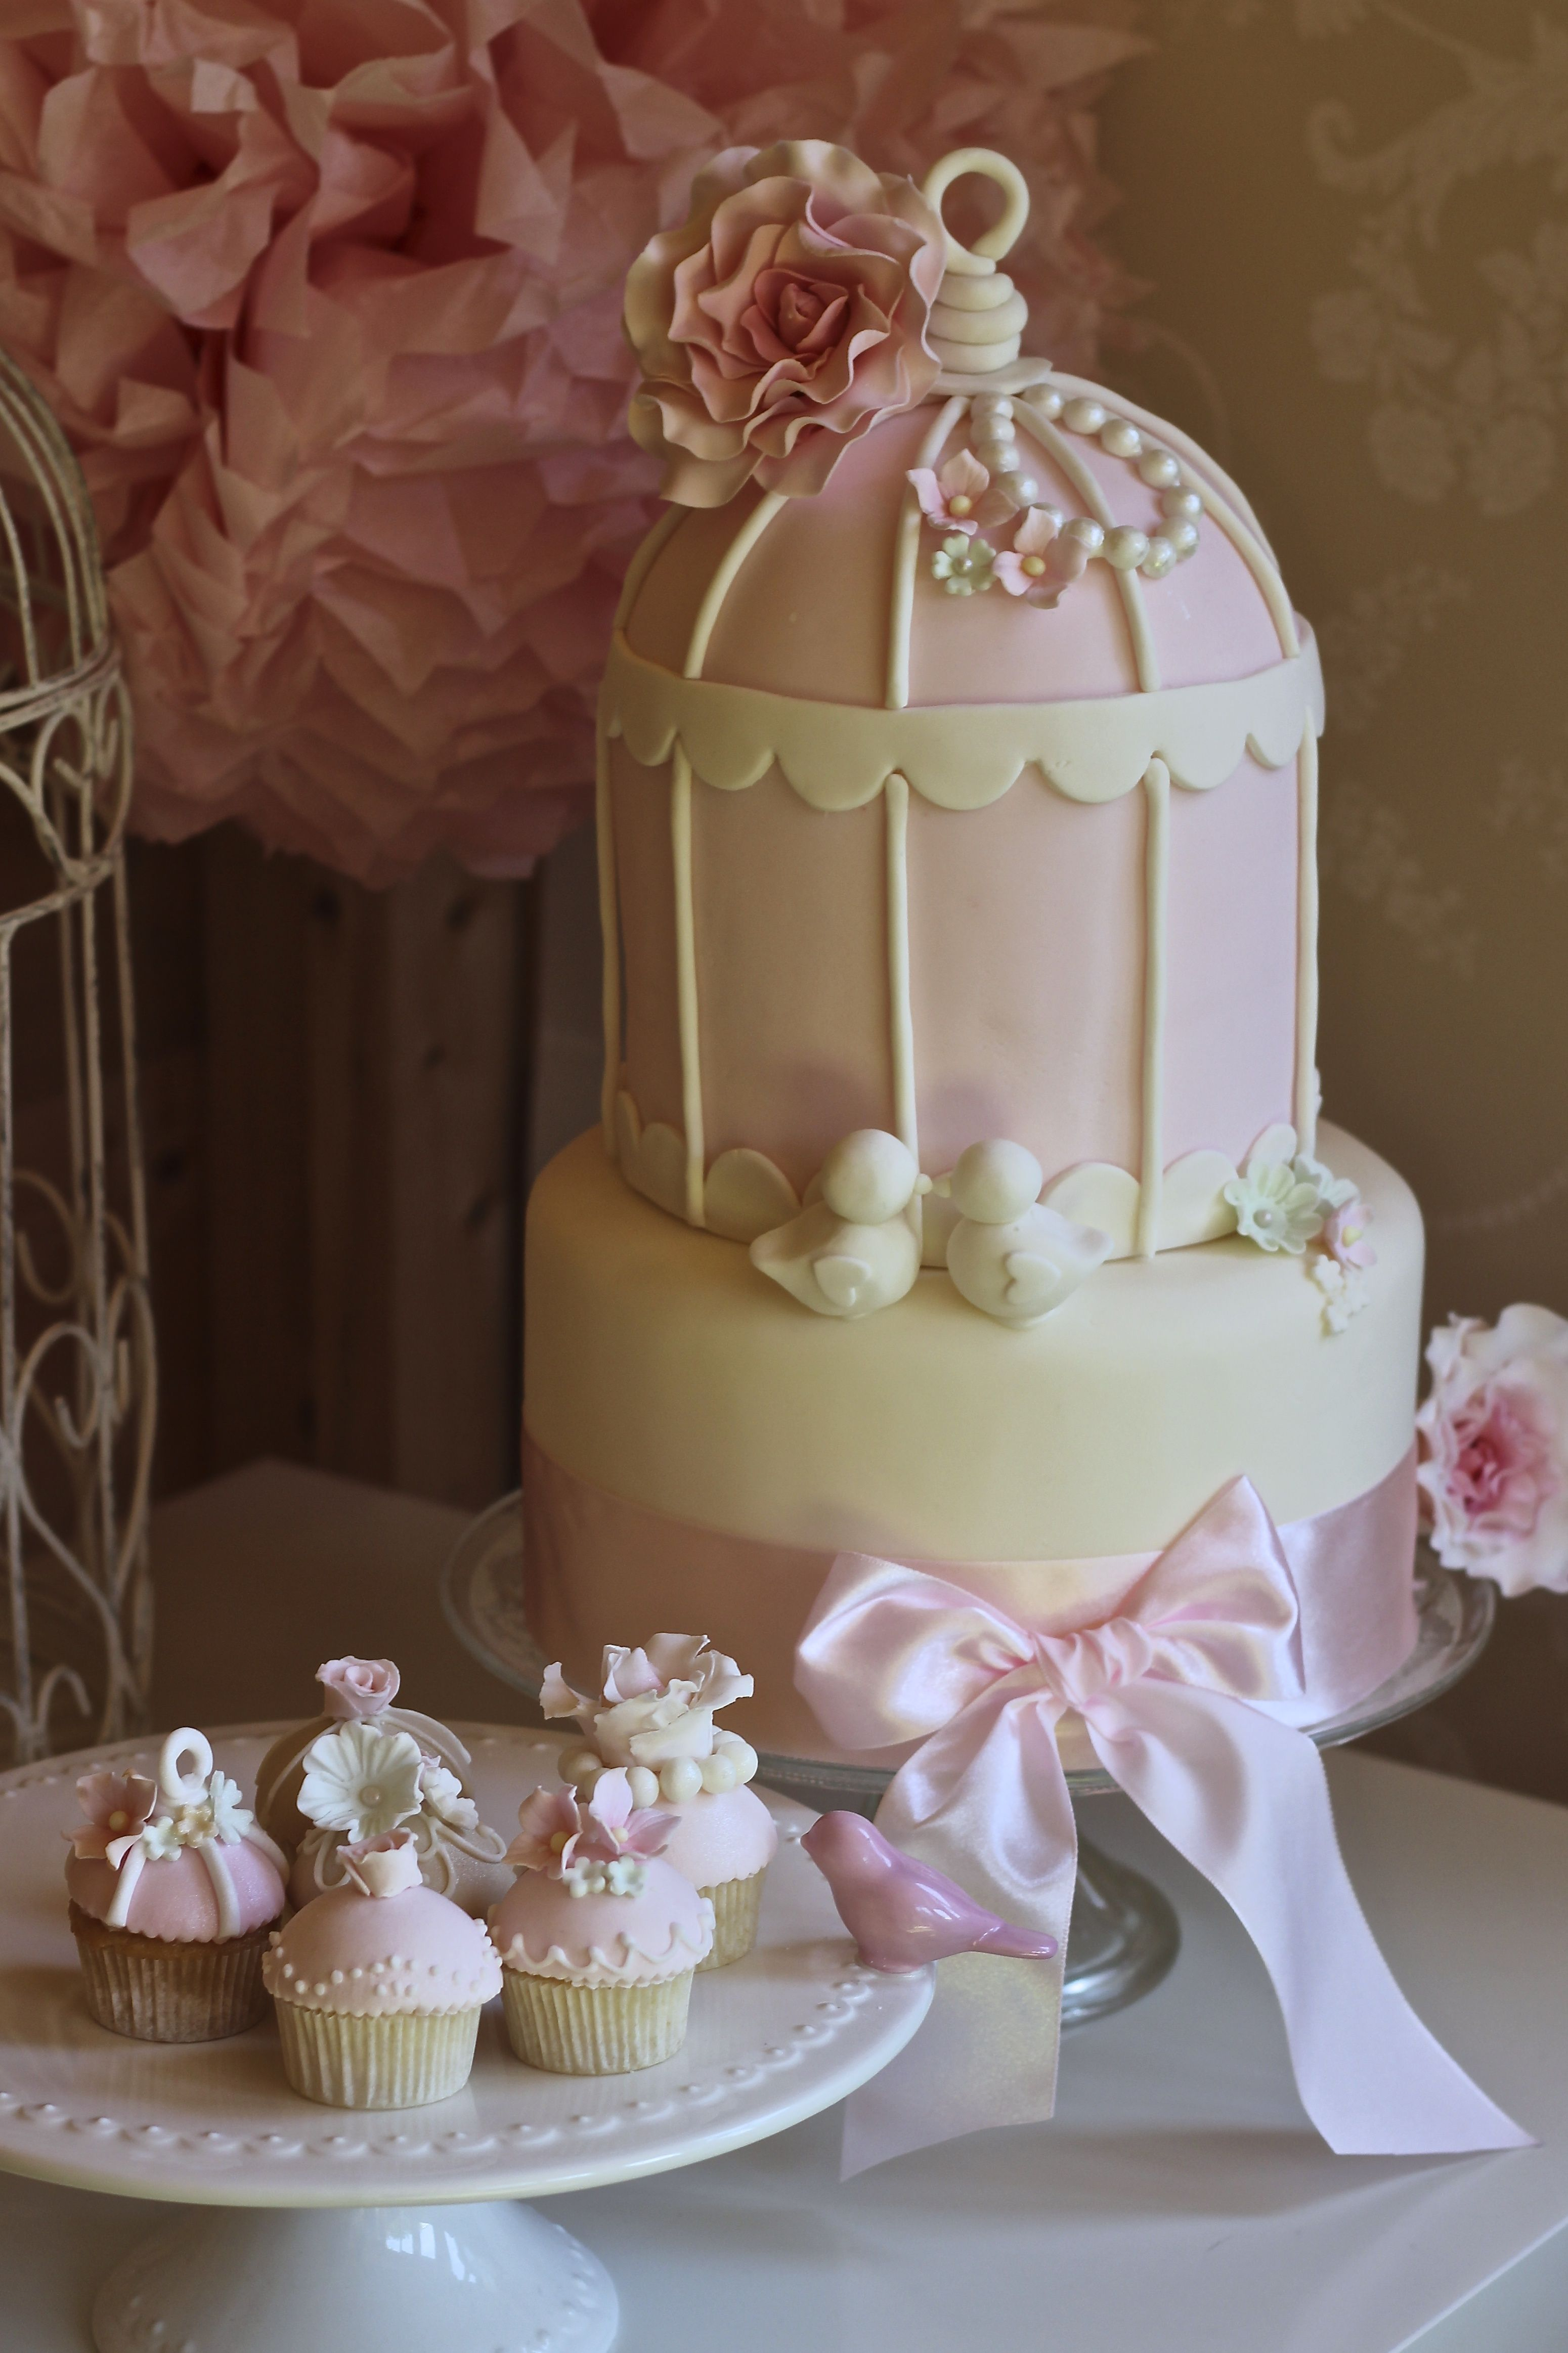 Vintage Birdcage Collection with matching mini cupcakes by The Little Cupcakery